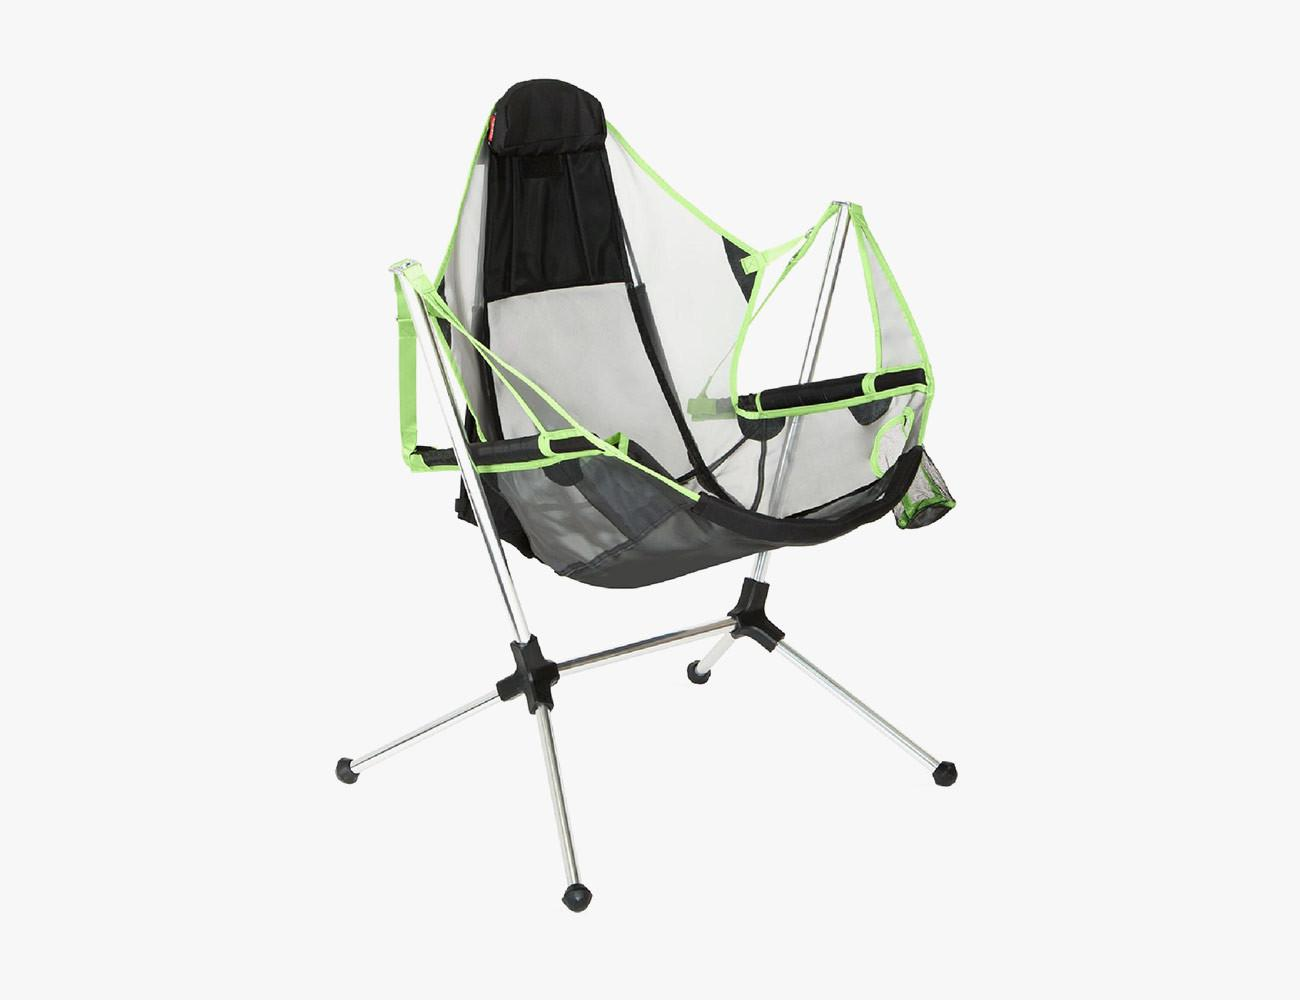 Best Camping Chairs Available Every Camper